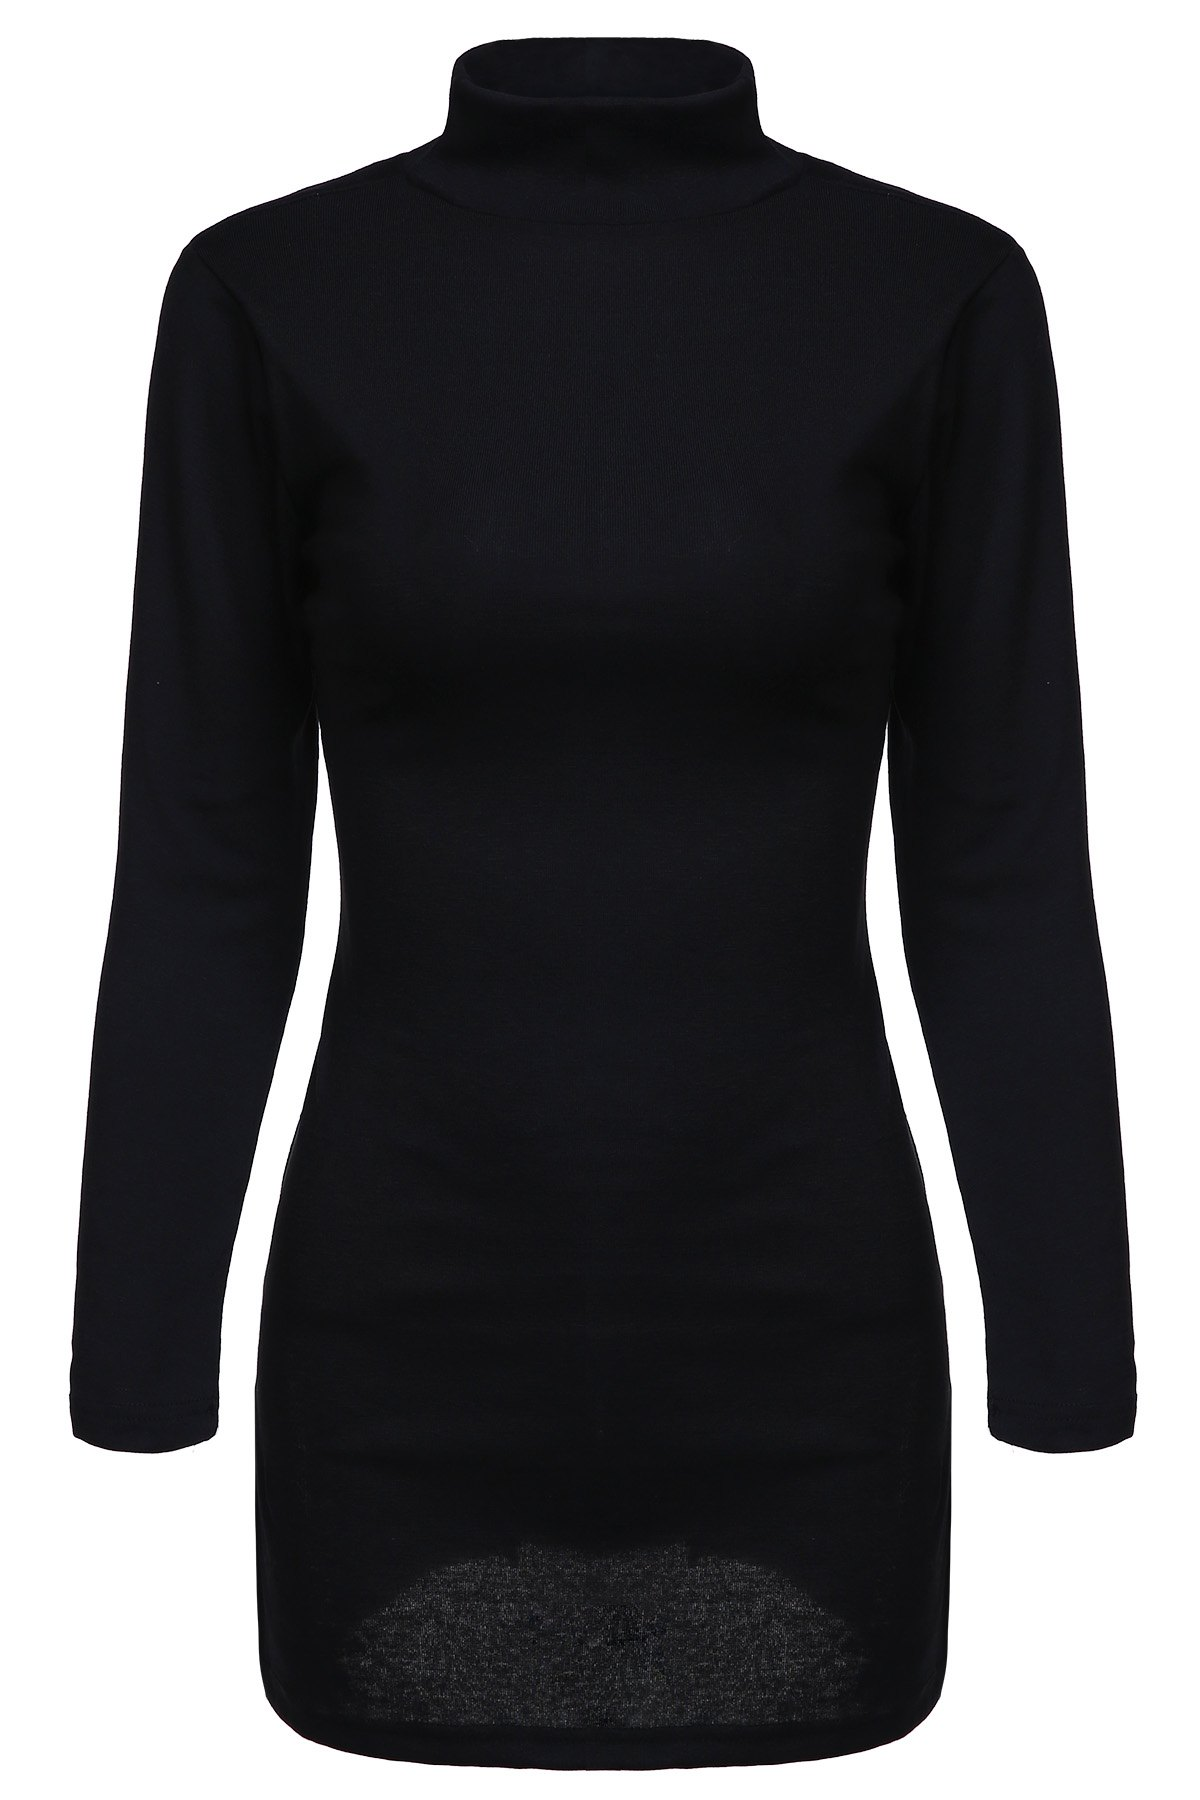 Black Side Slit Turtle Neck Long Sleeves T-Shirt